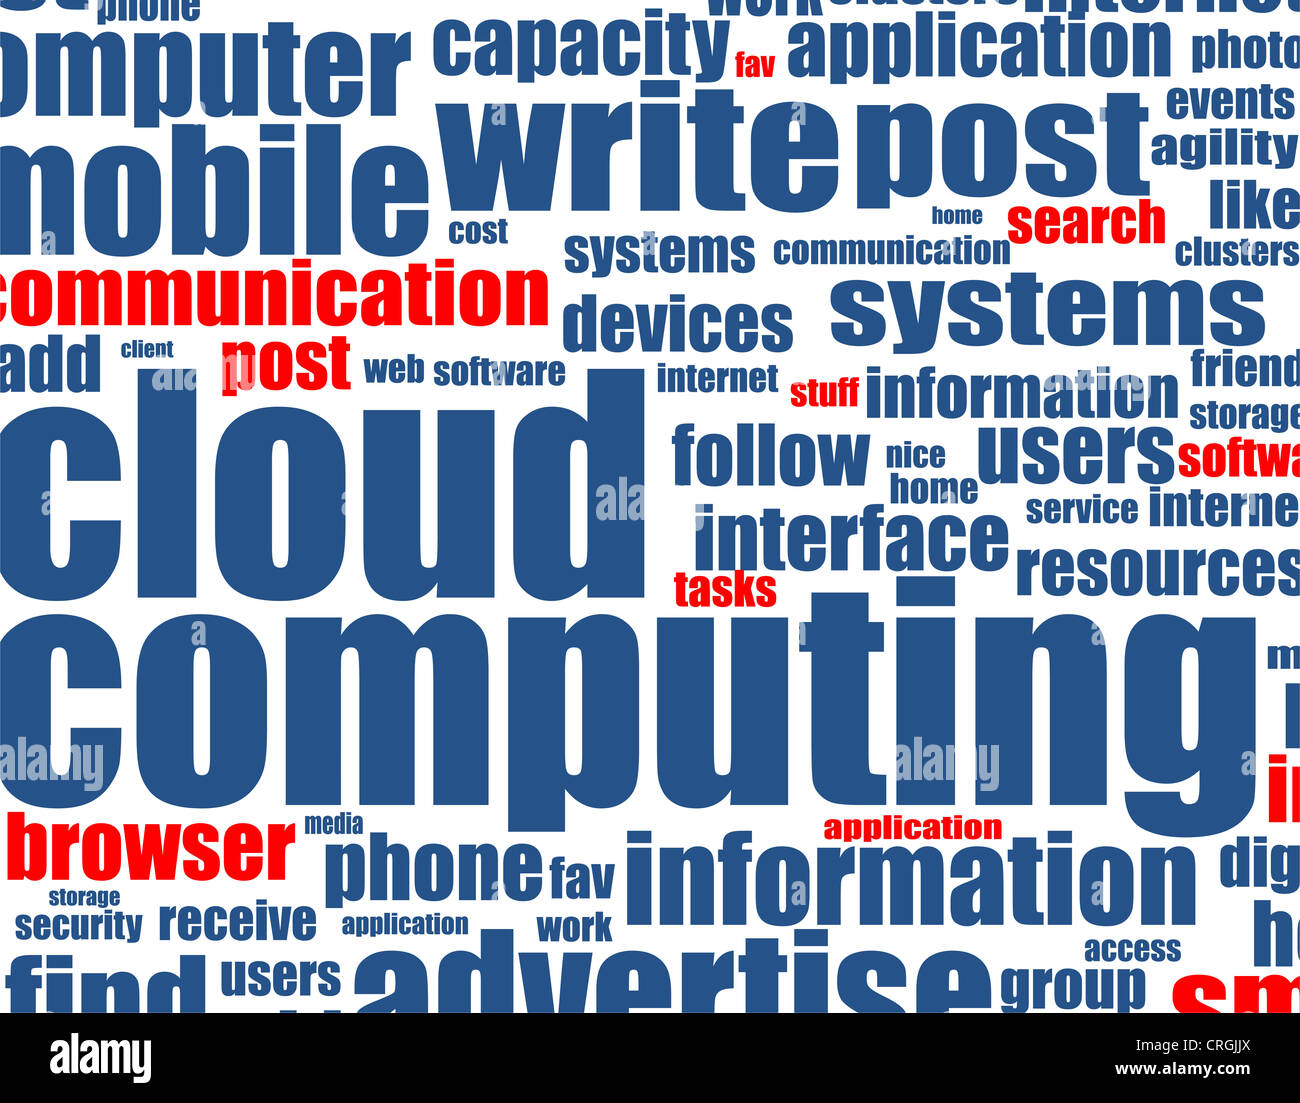 Cloud computing - mot Contexte Photo Stock